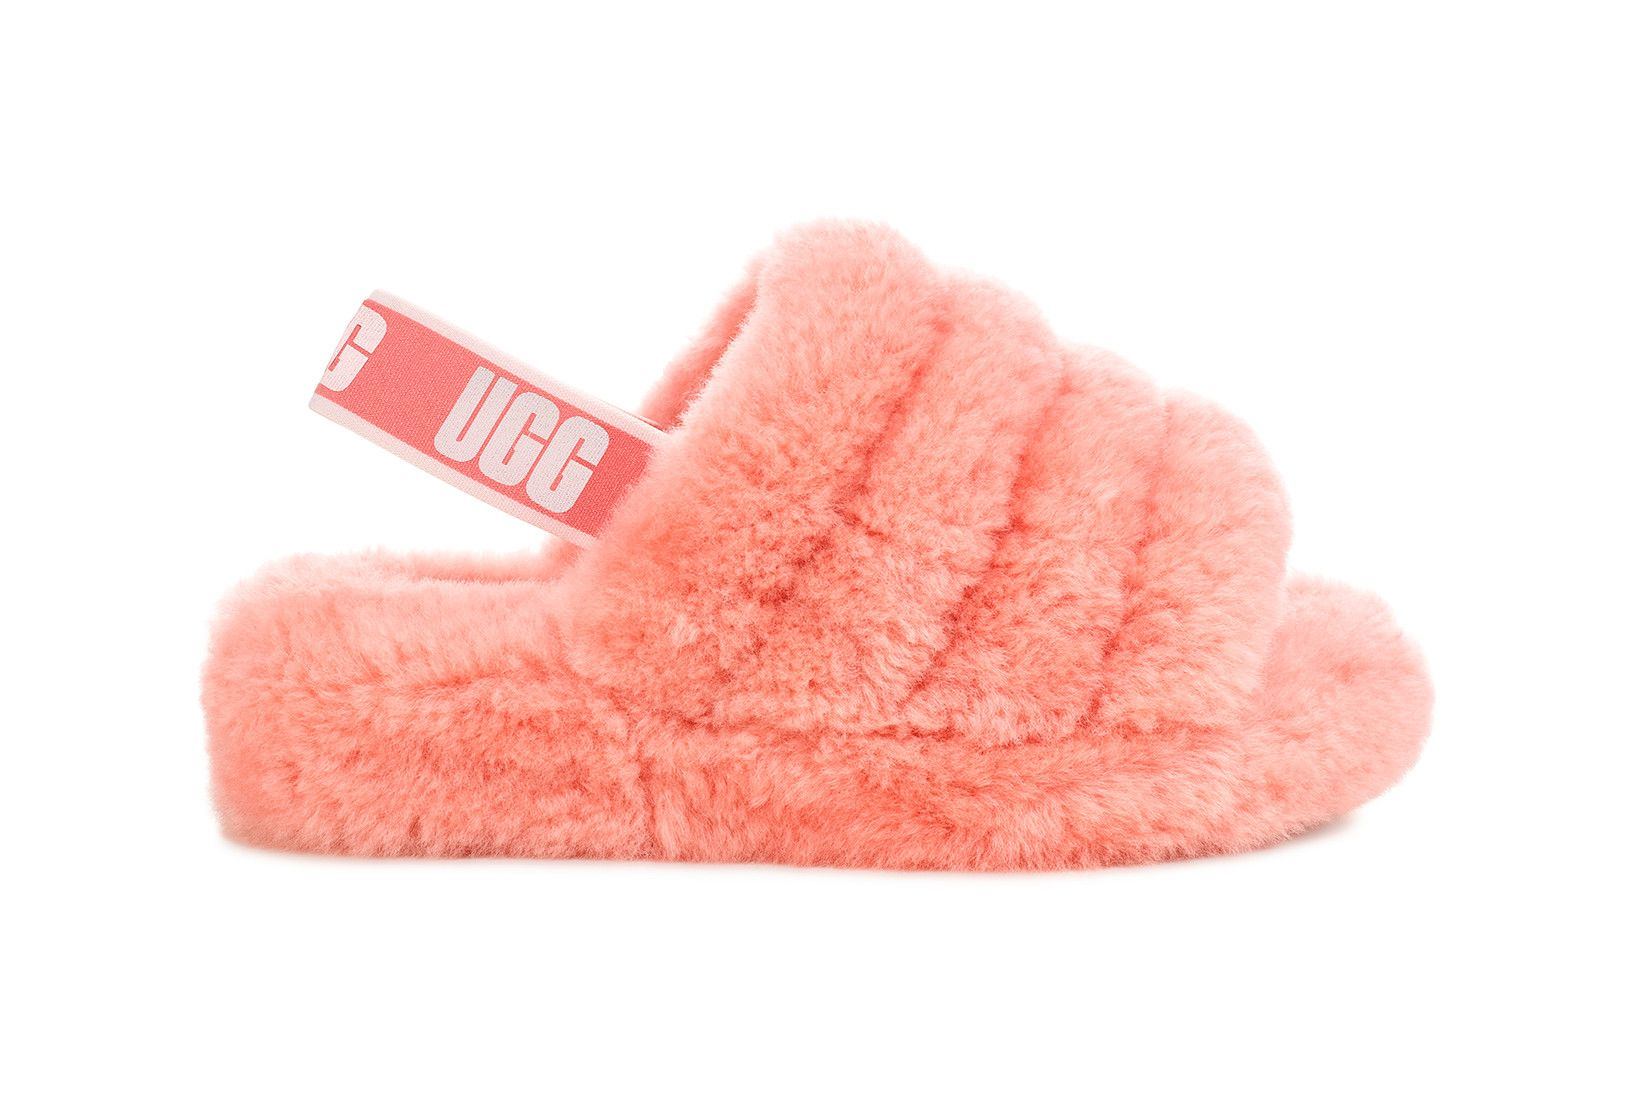 eb1d67b8372 UGG Just Unveiled the Ultra-Fluffy Sandals You Never Knew You Needed ...